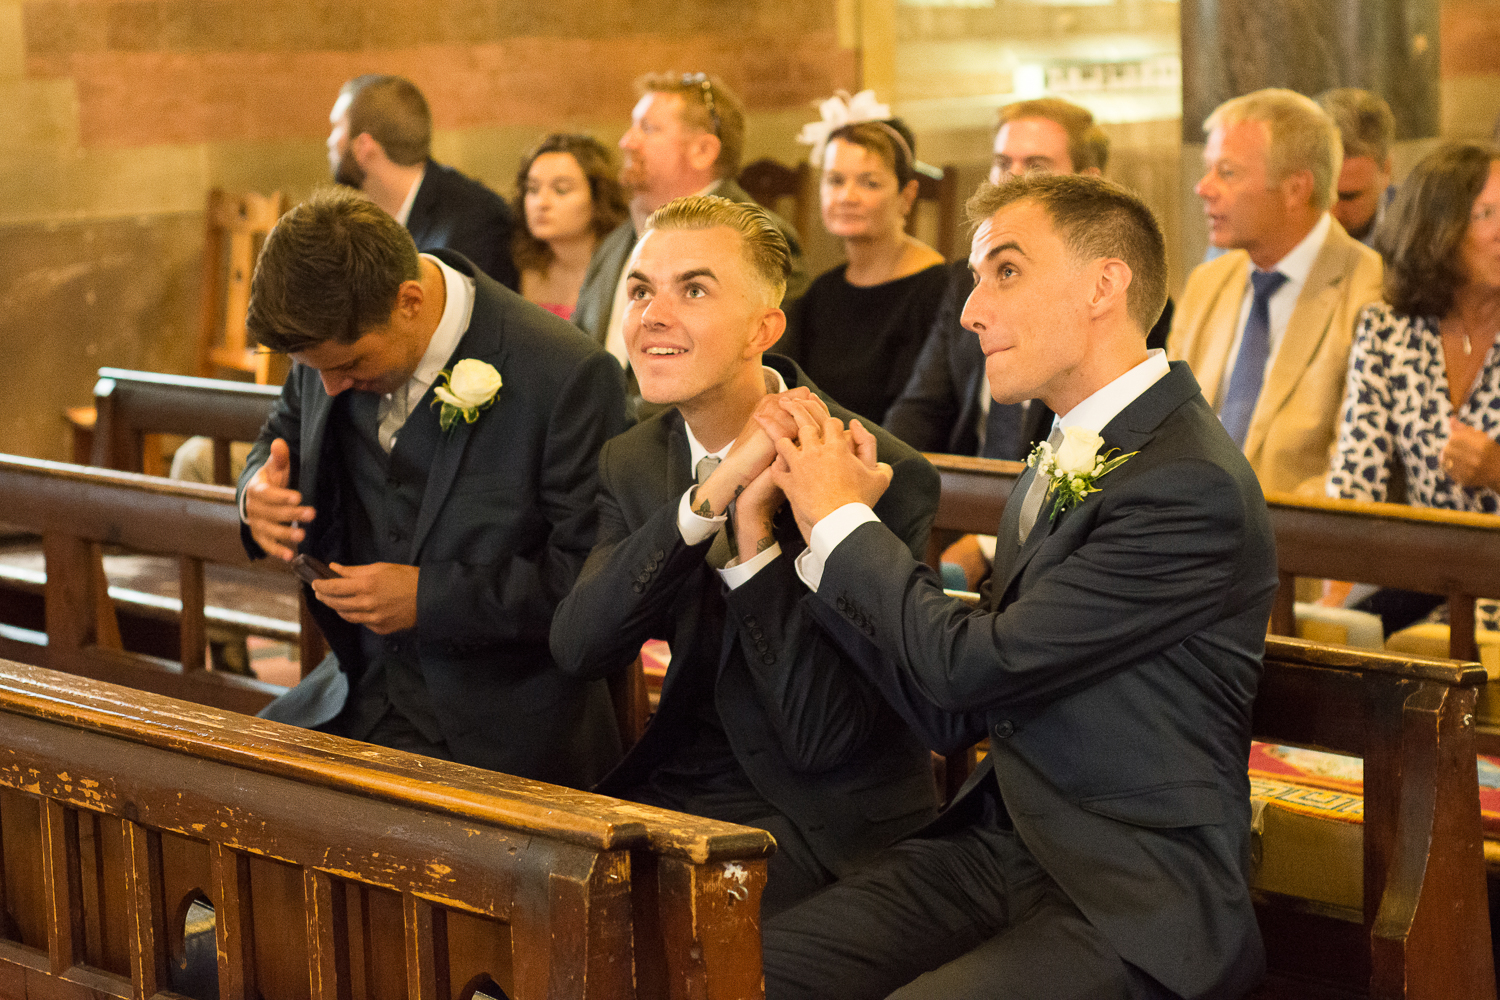 The groom and his brother knock one out of the park at All saints church in Torquay, Devon